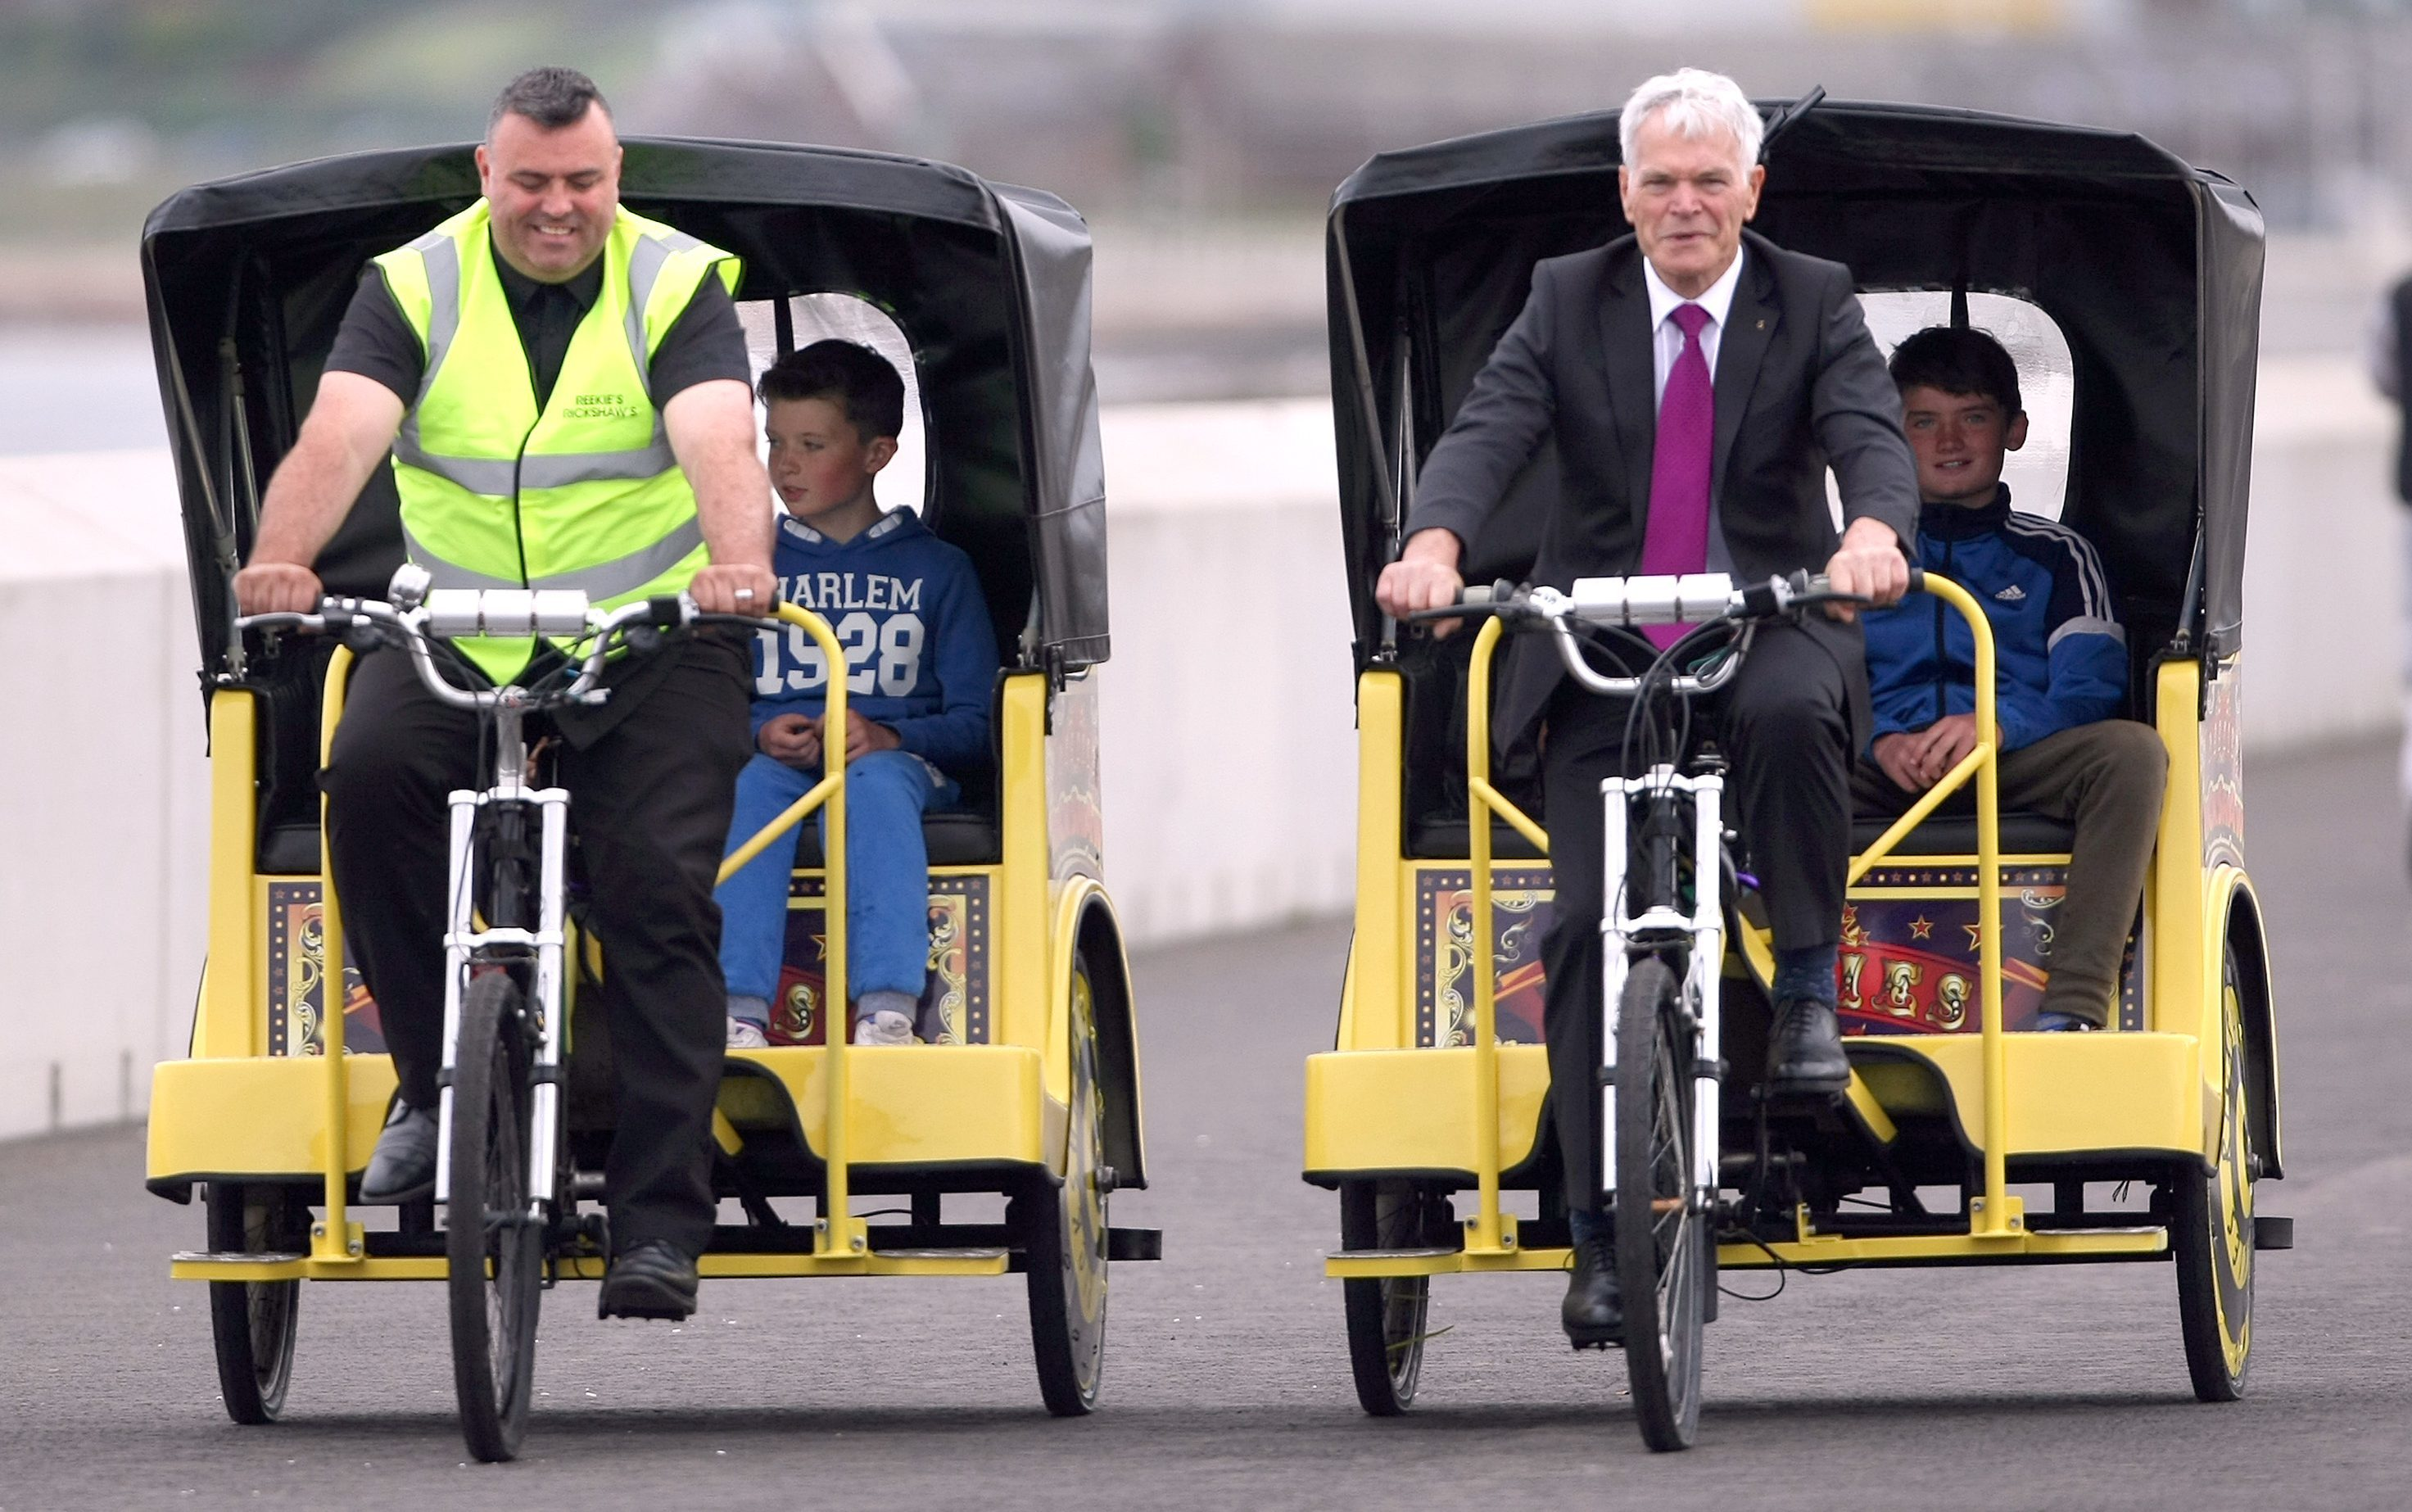 Tyrone Reekie cycling his rickshaw with Councillor Rod Cavanagh.